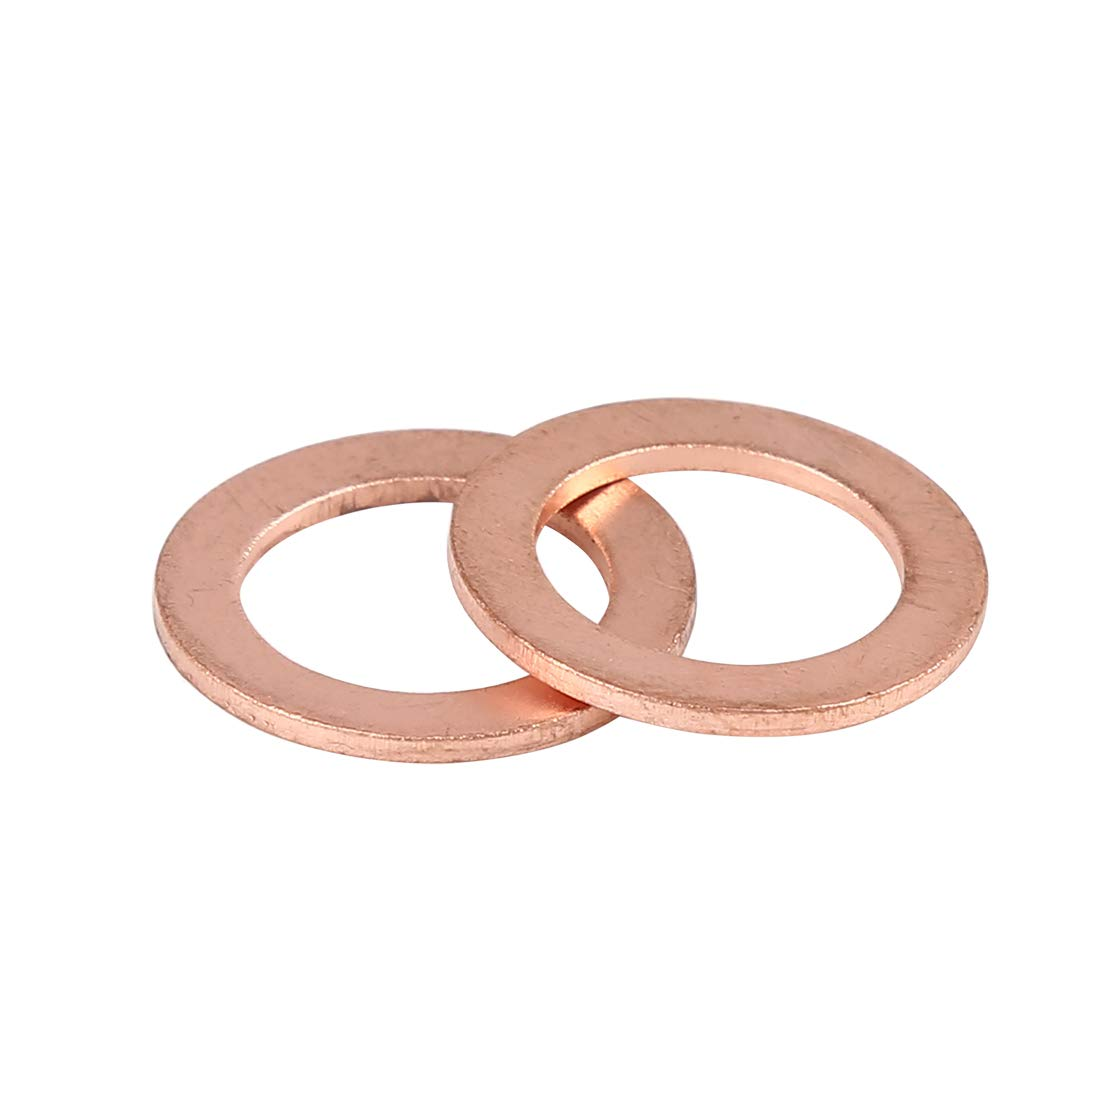 X AUTOHAUX 20pcs Copper Washer Flat Sealing Gasket Ring Spacer for Car 16 x 24 x 1.5mm